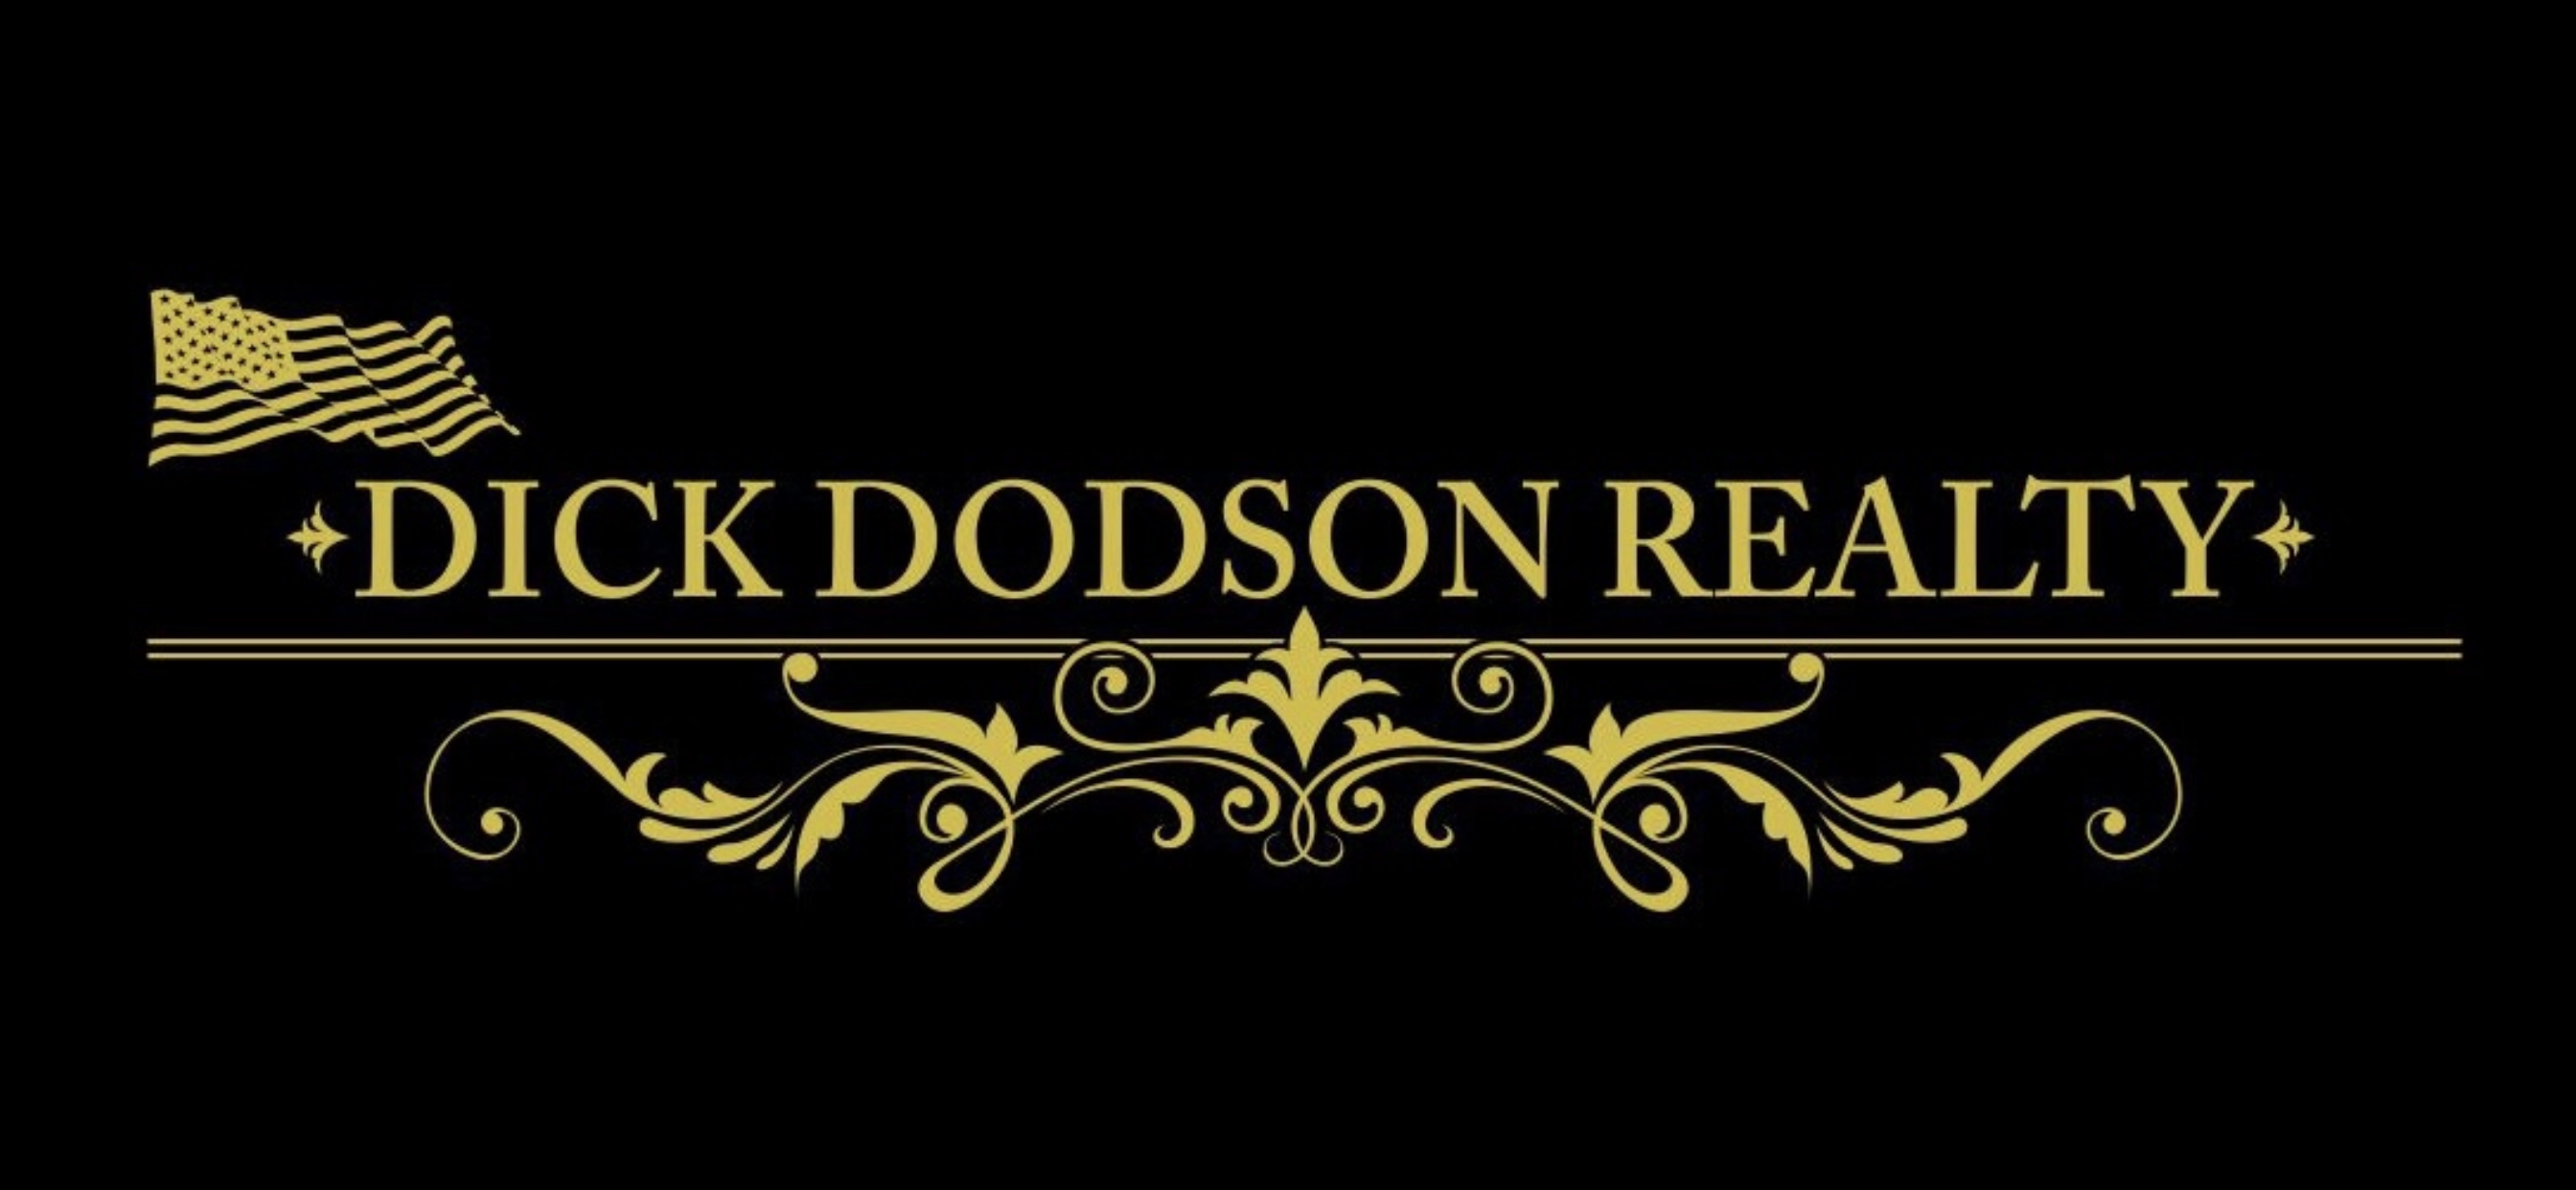 Dick Dodson Realty